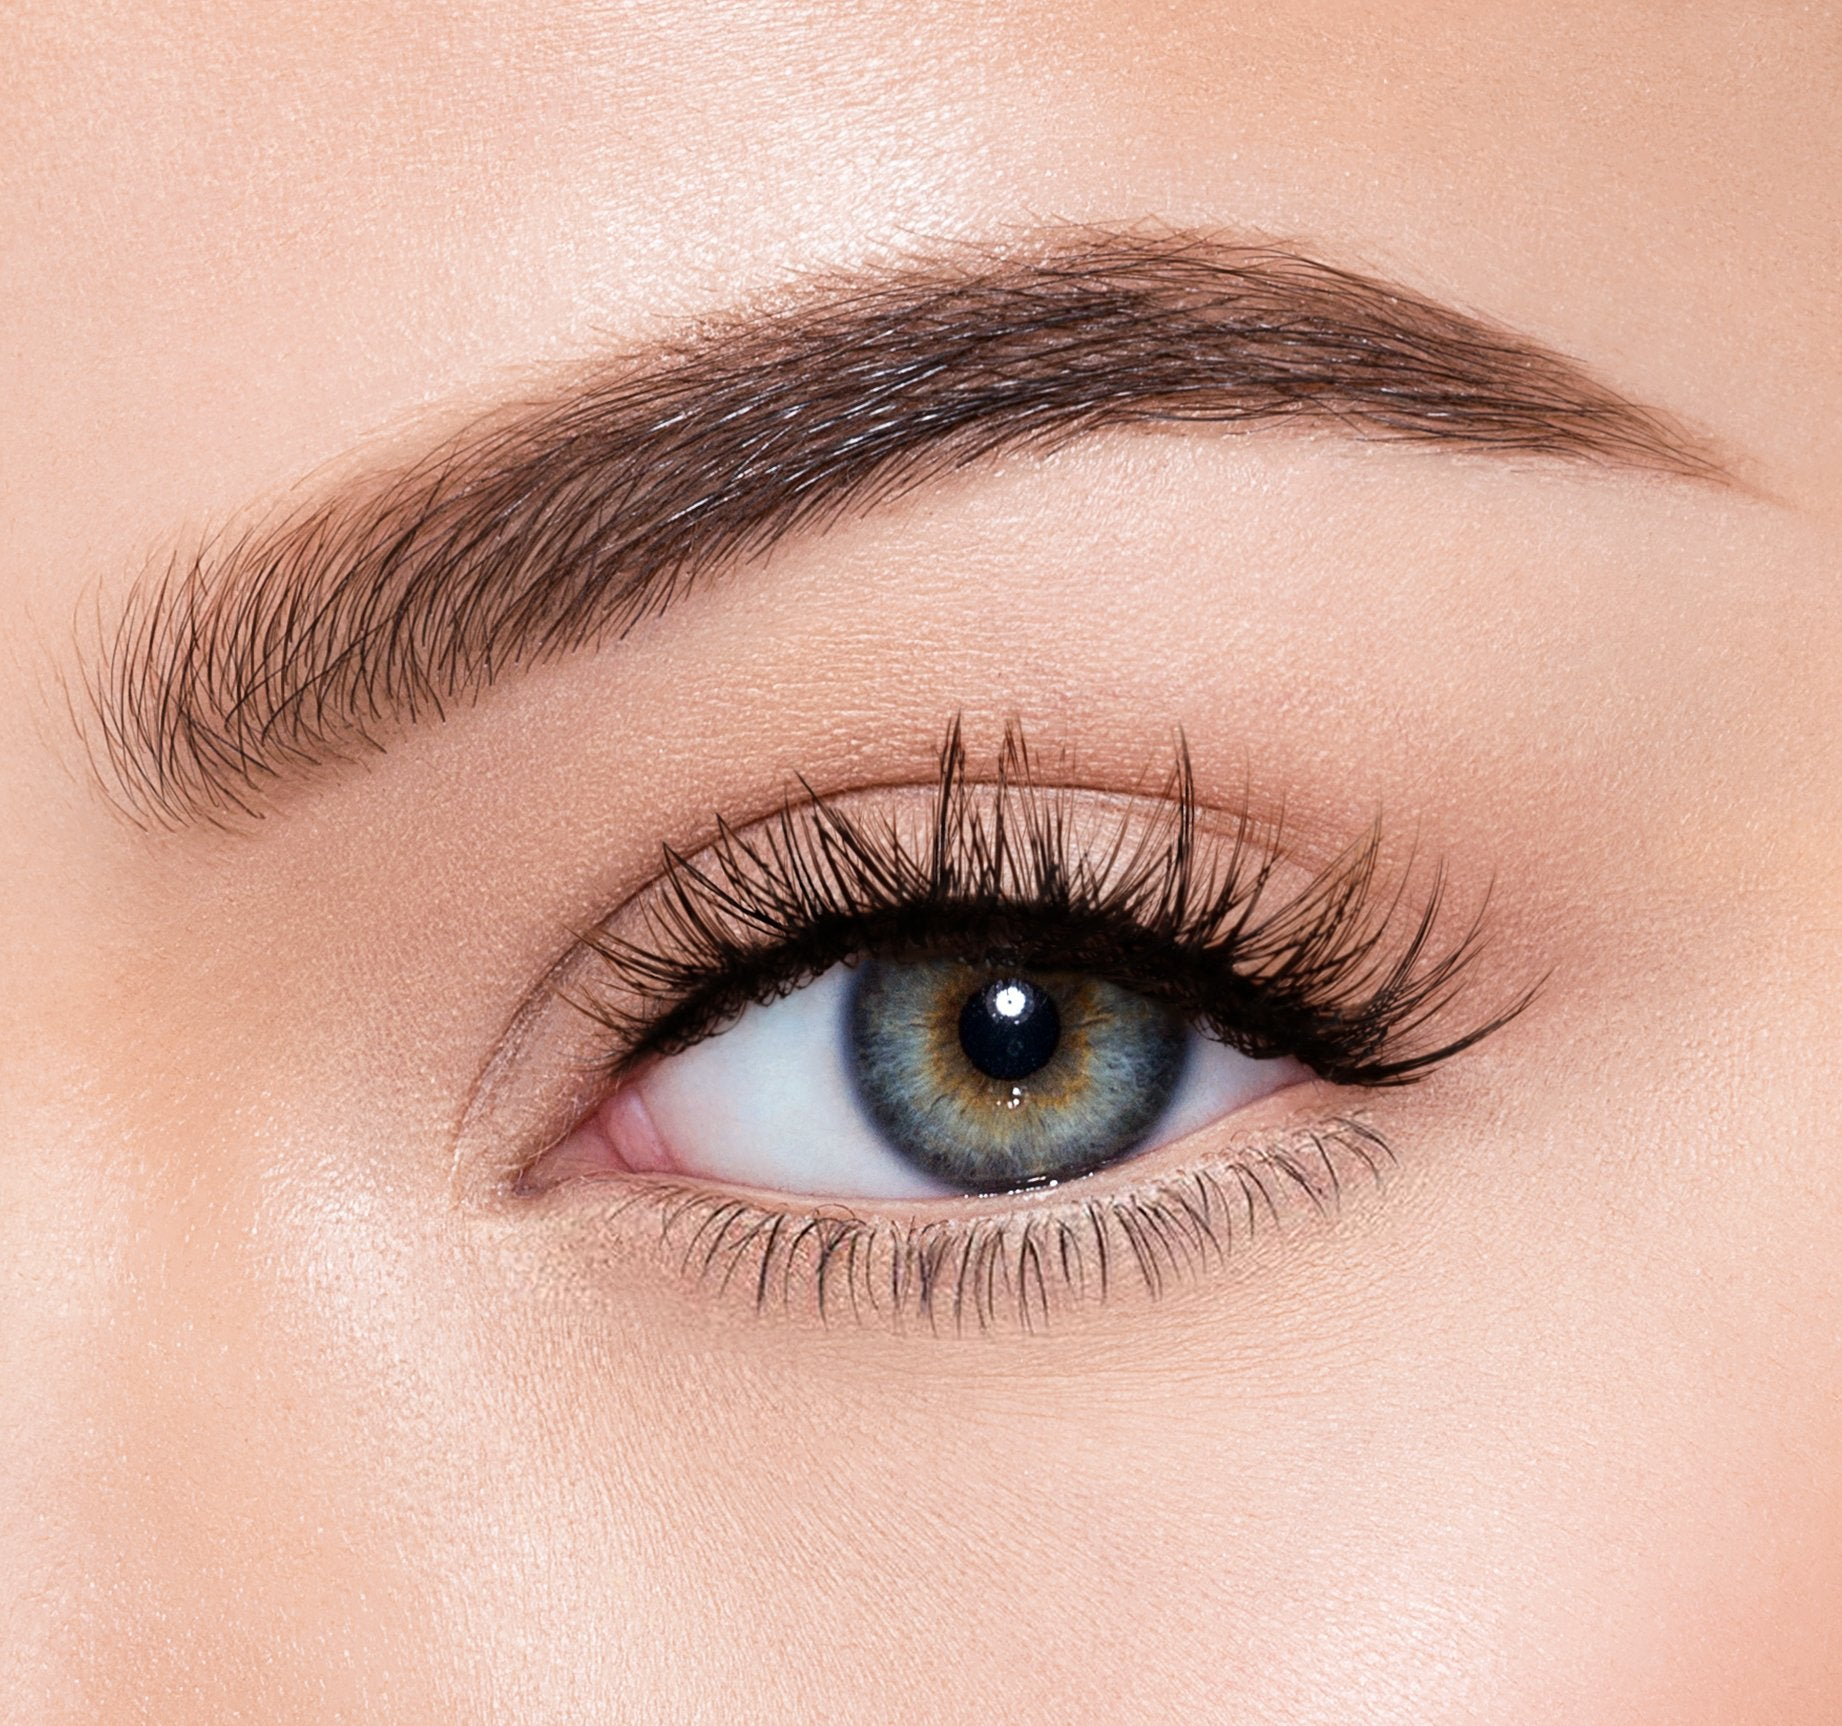 PREMIUM LASHES -  HYPNOTIC ON MODEL, view larger image